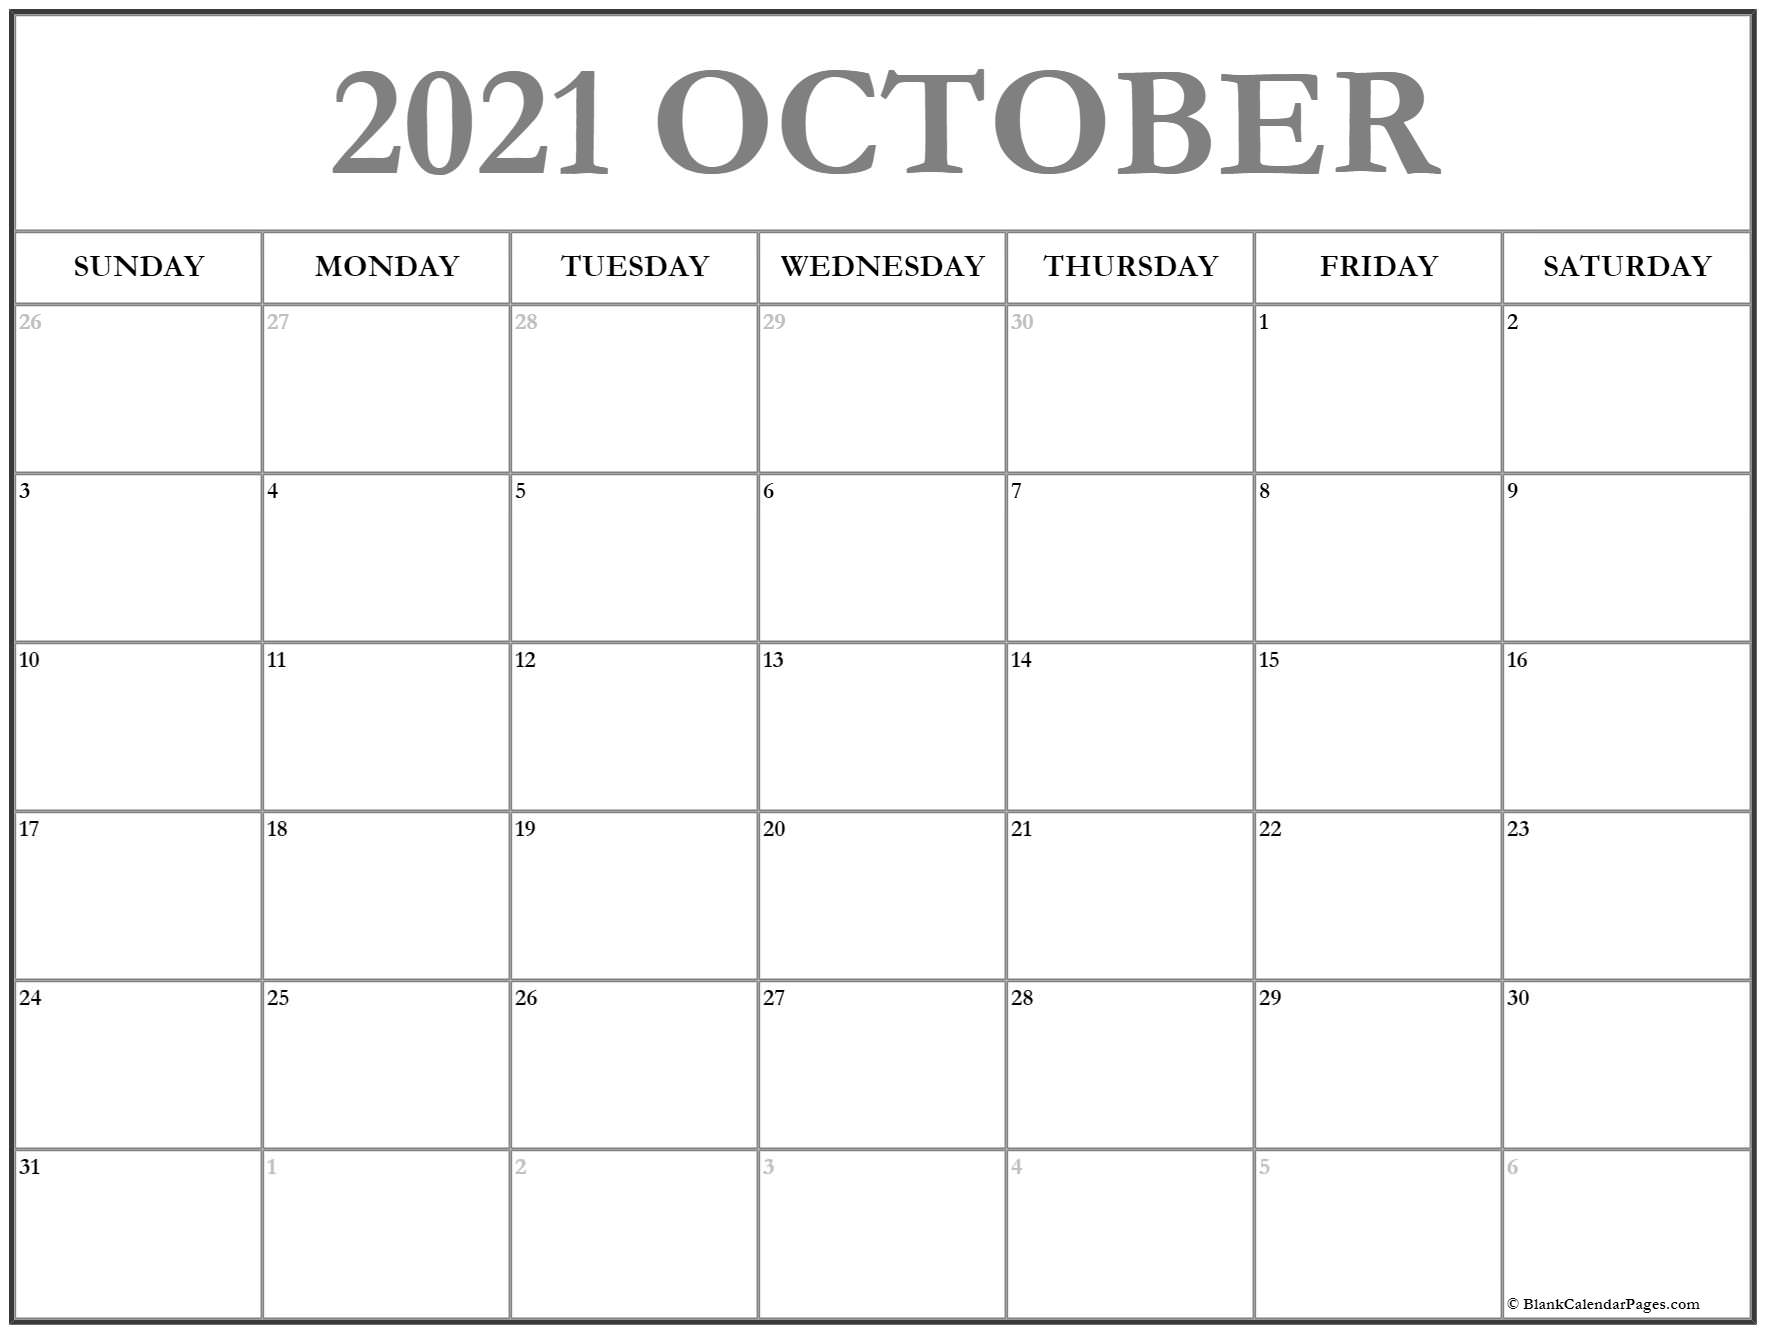 Calendar 2020 October October Calendar 2020 Printable And Free Blank  Calendar